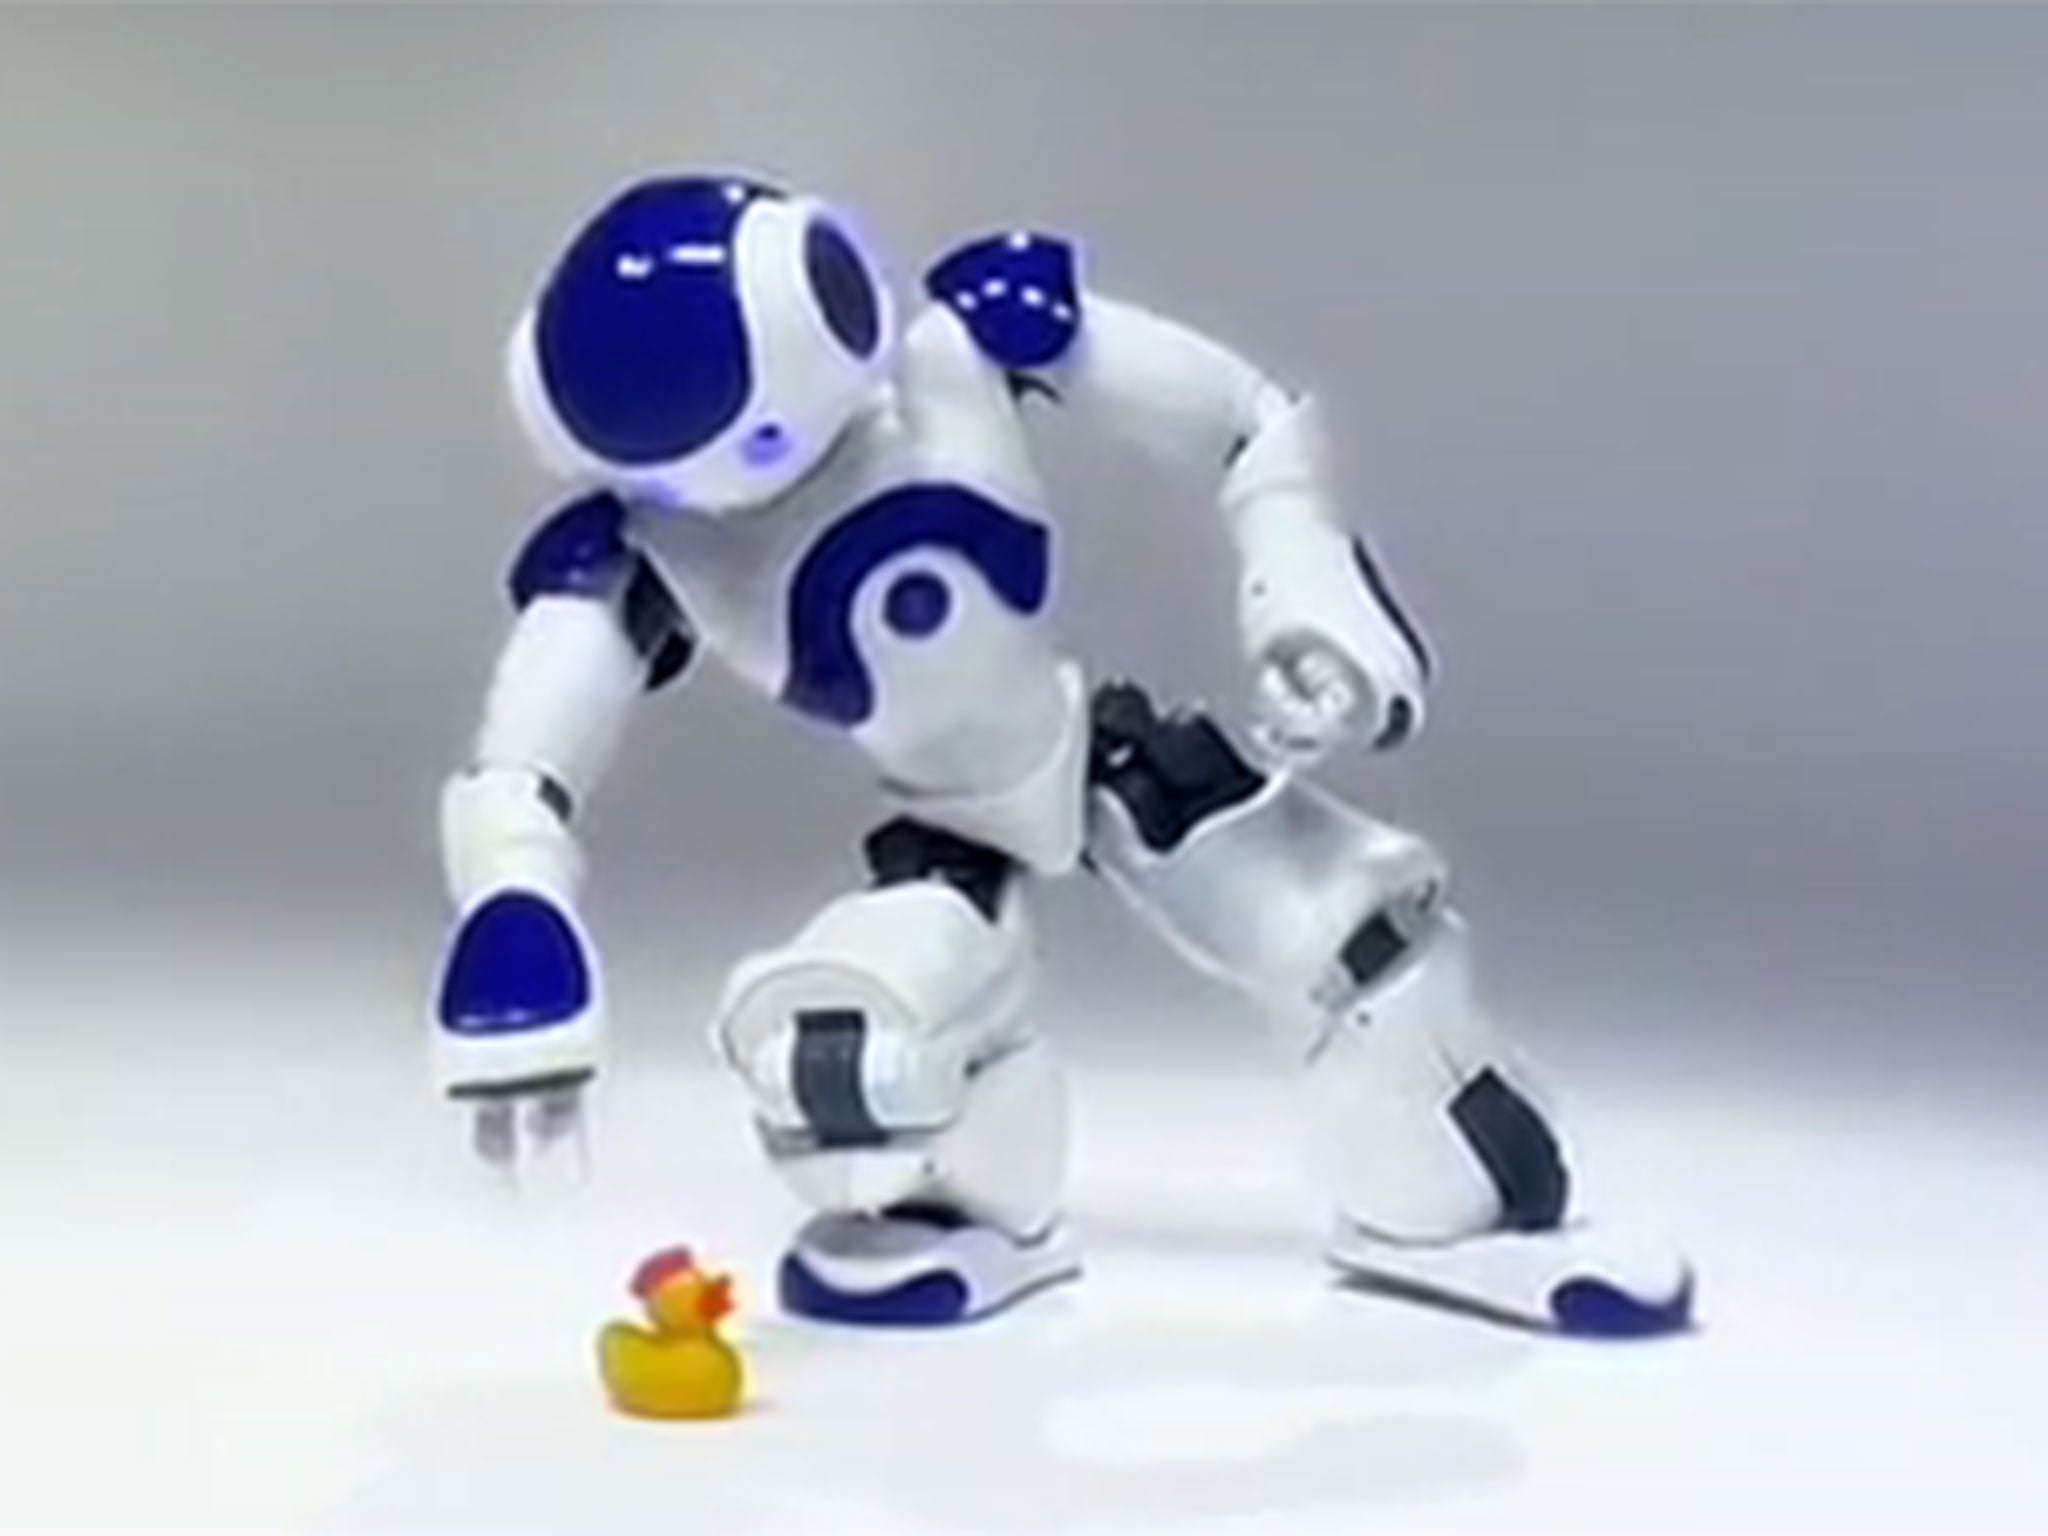 nao robot for sale uk